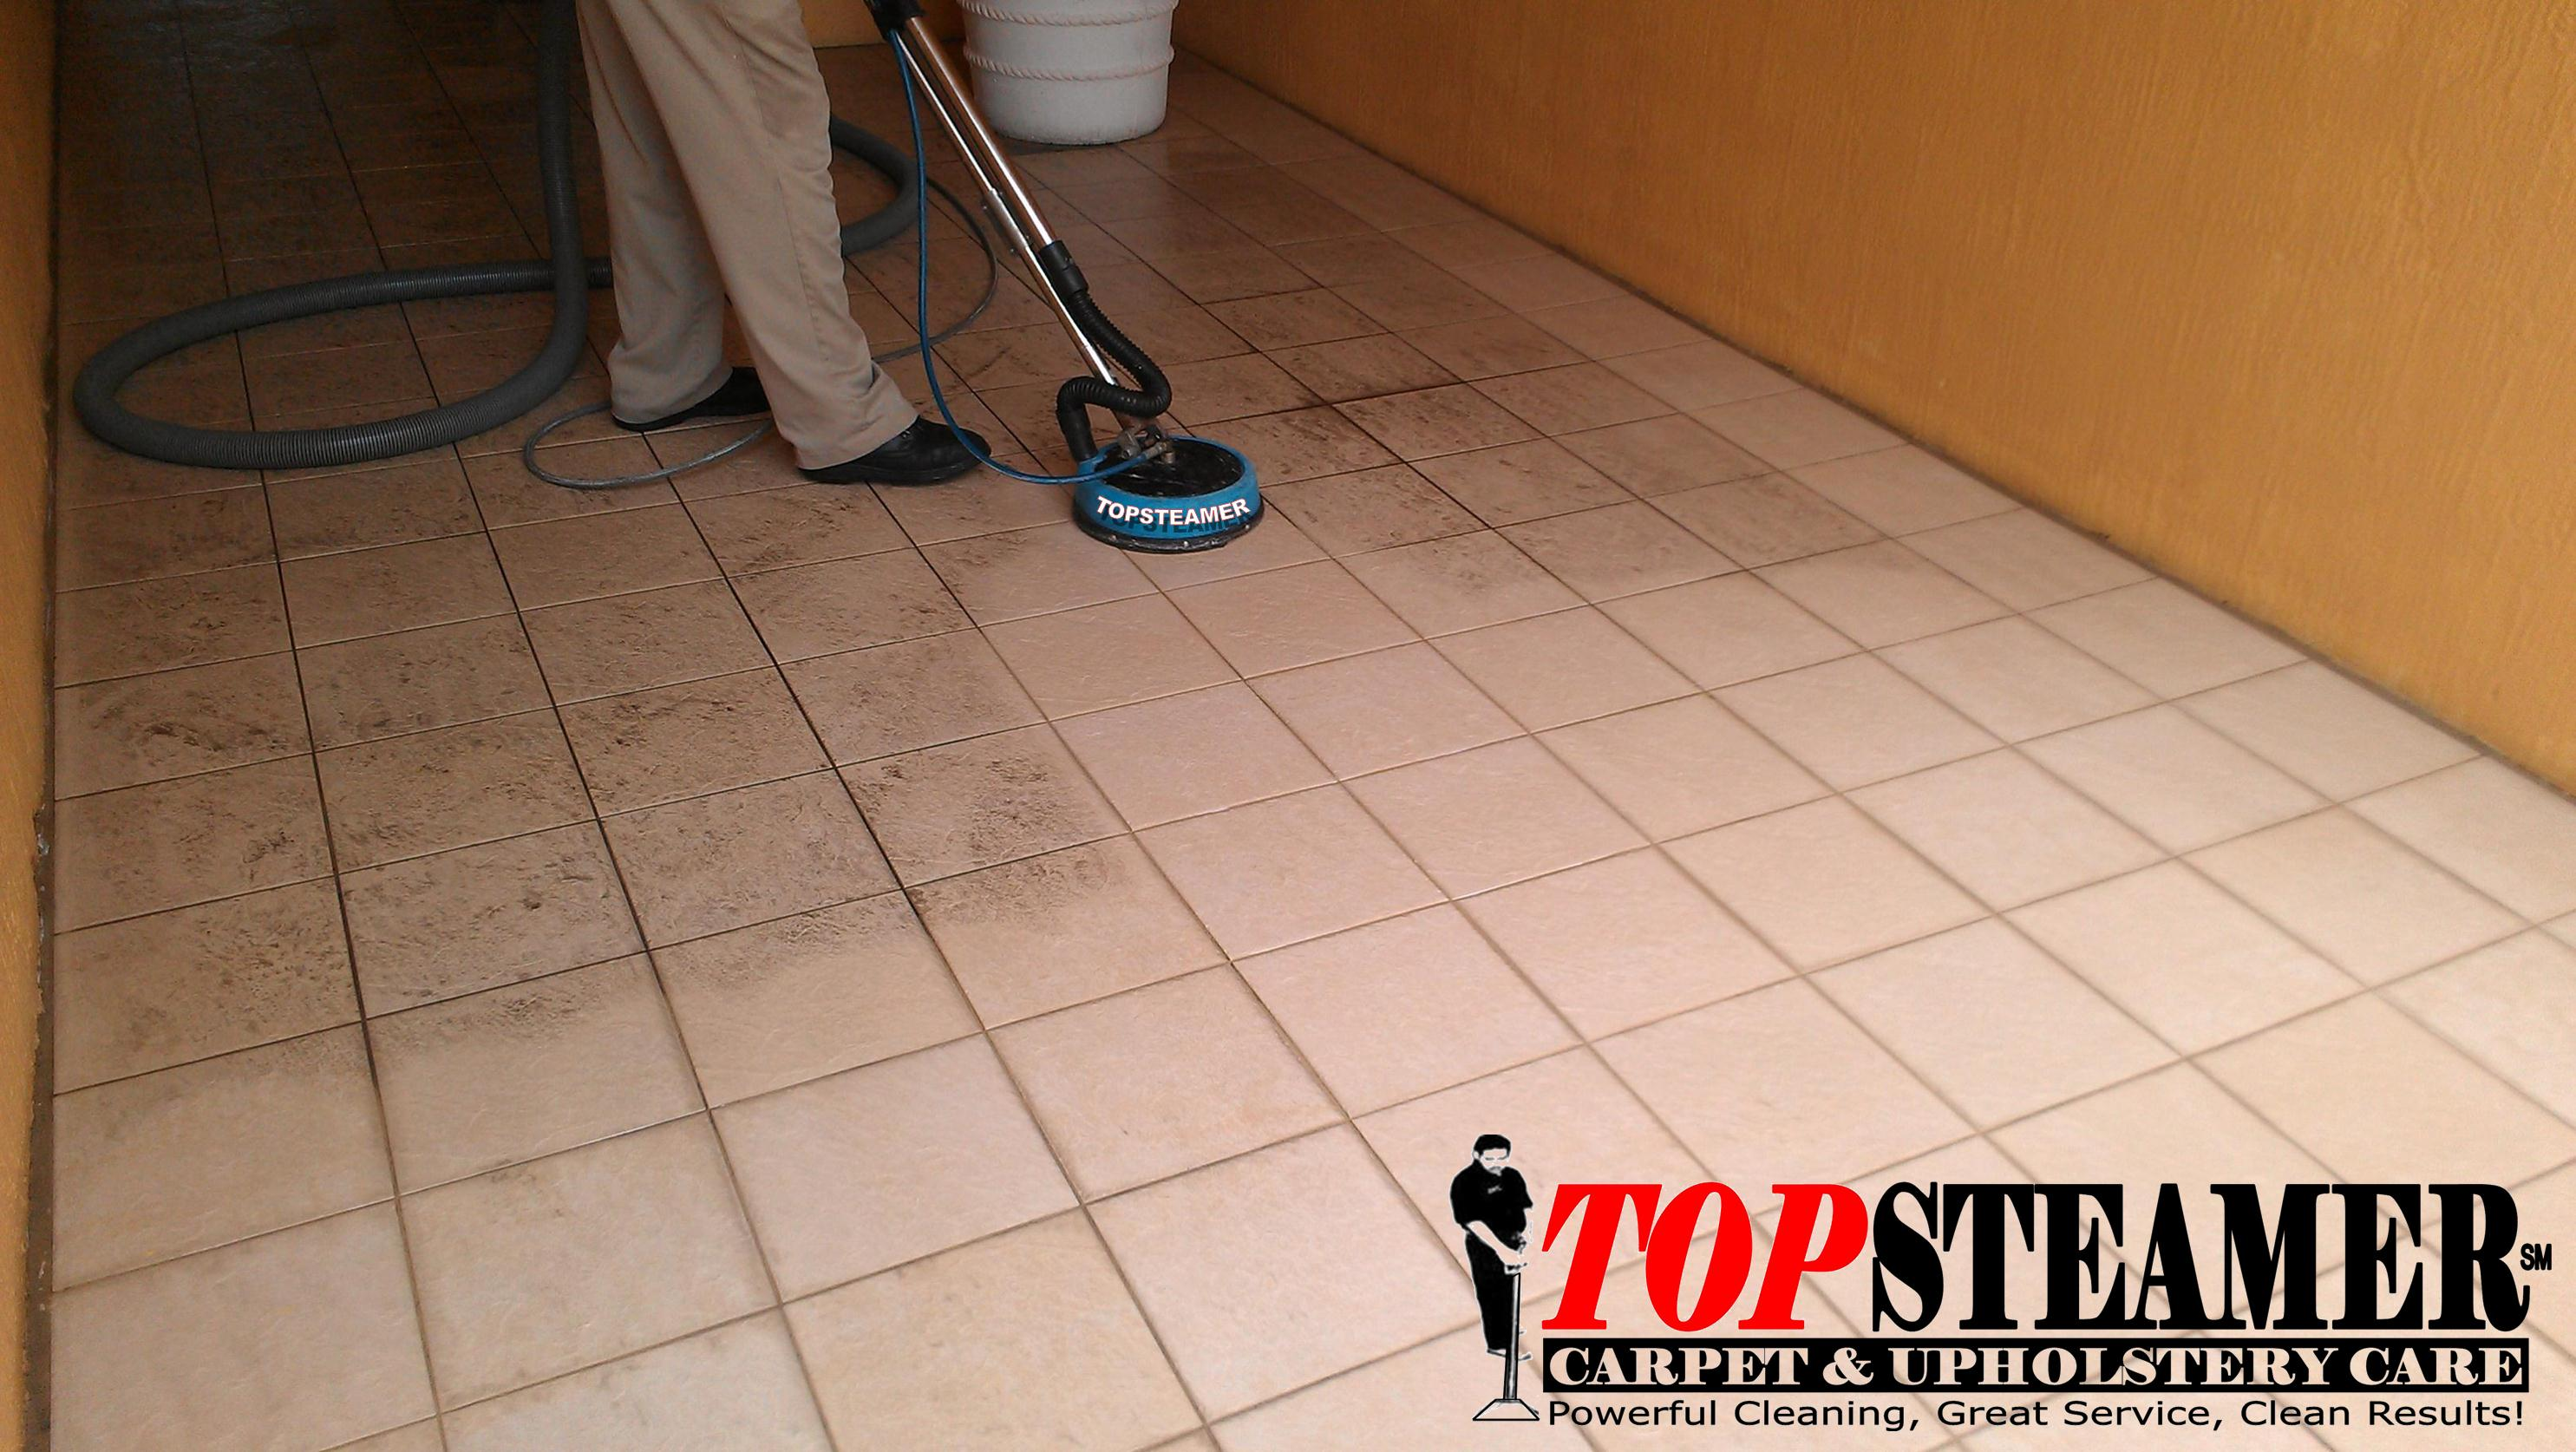 What Is The Best Way To Clean Ceramic Floor Tile Grout Apps